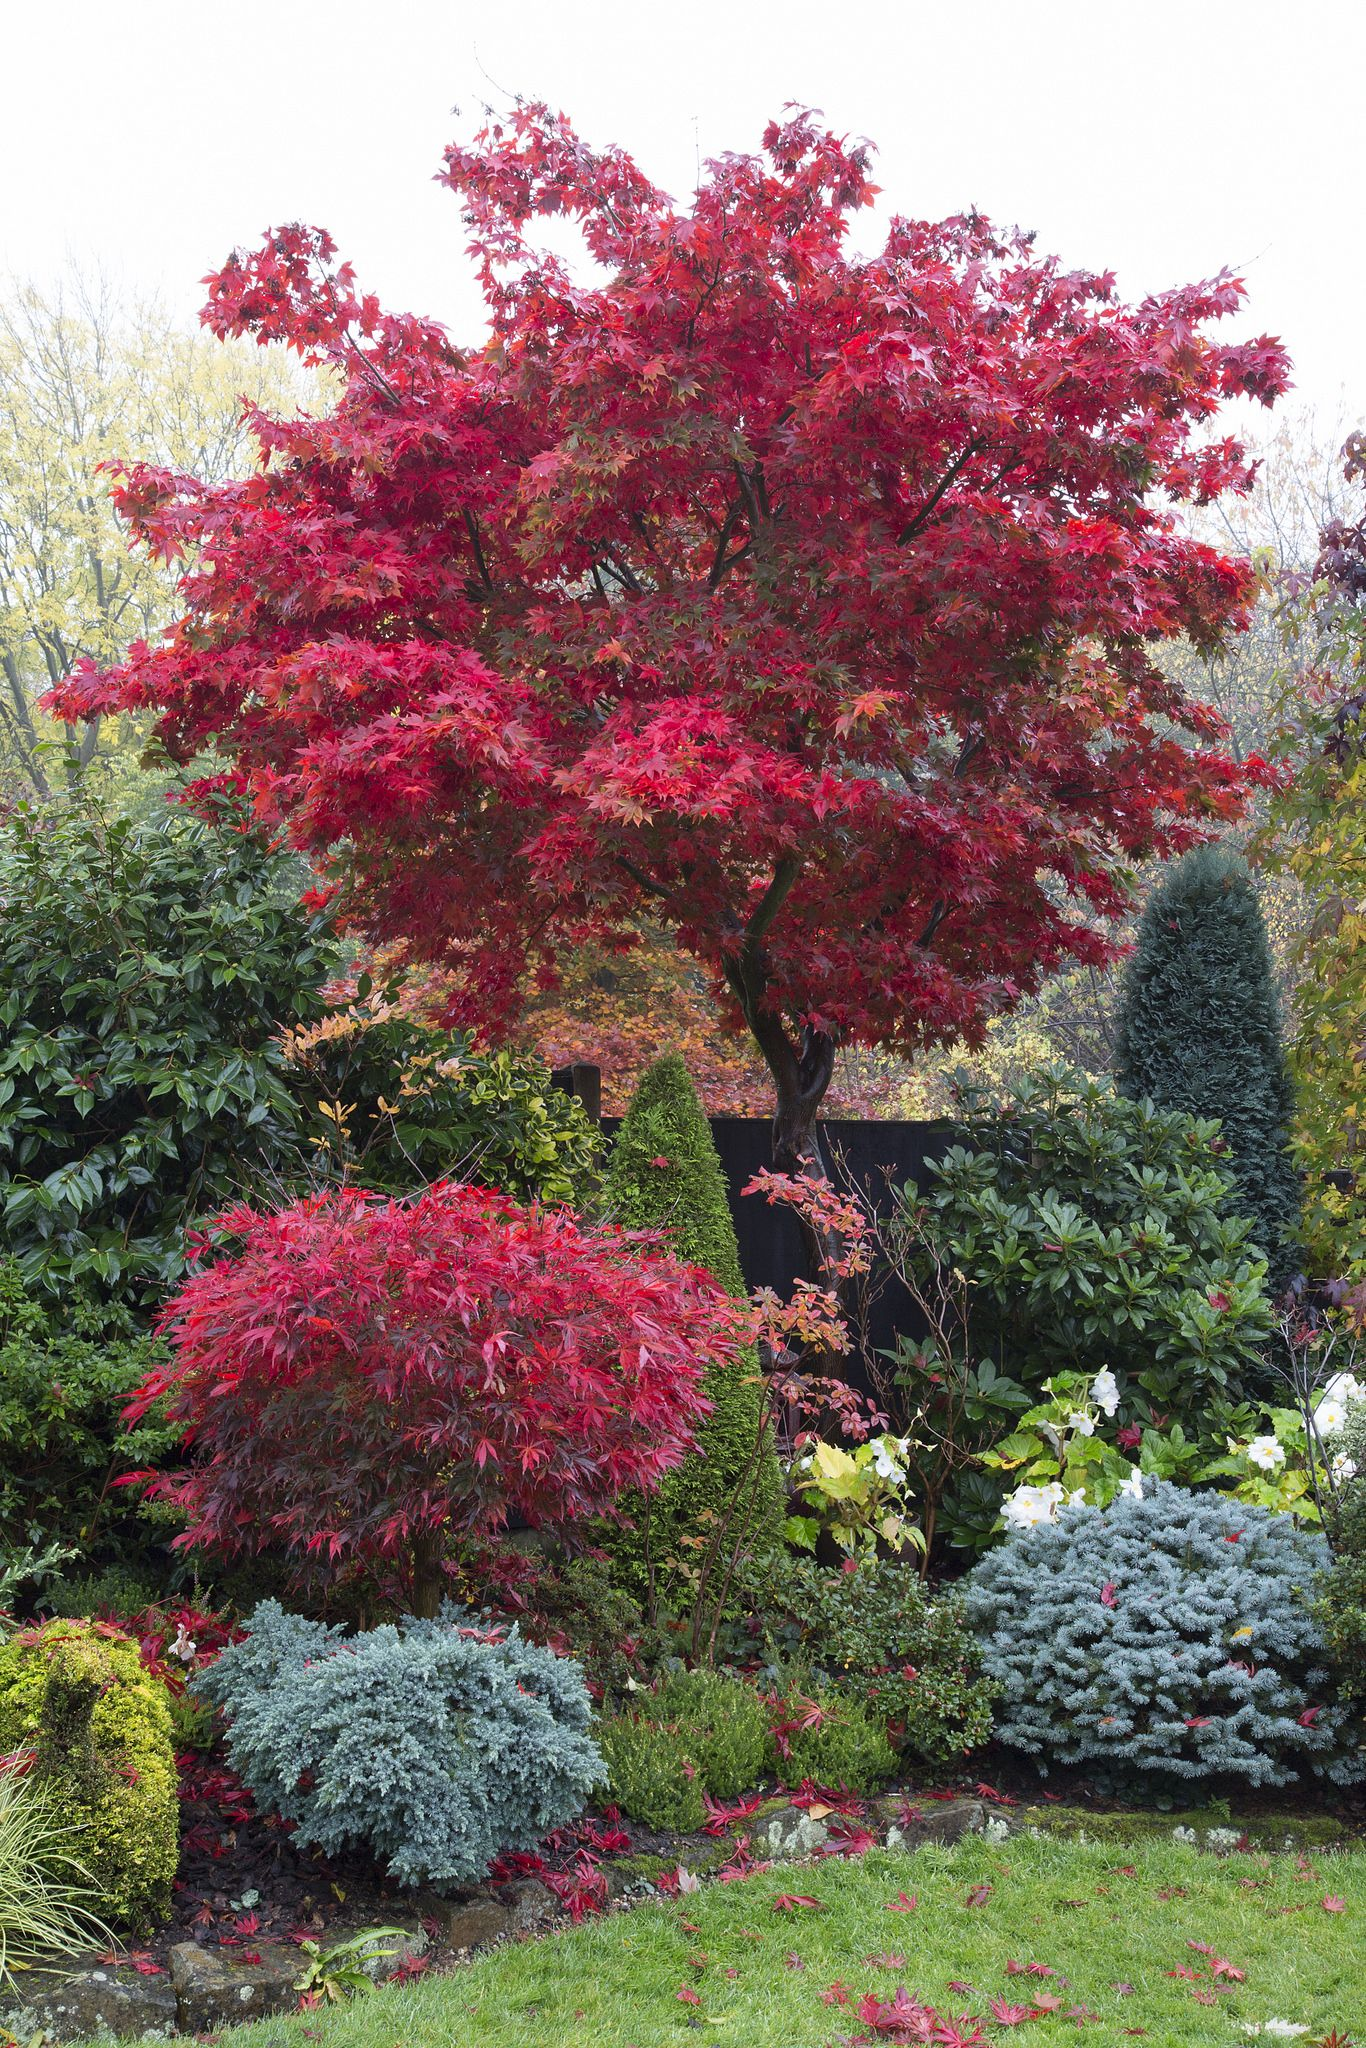 5a8879449a8cef21c70473933f6031e6 - Japanese Maple Trees For Small Gardens